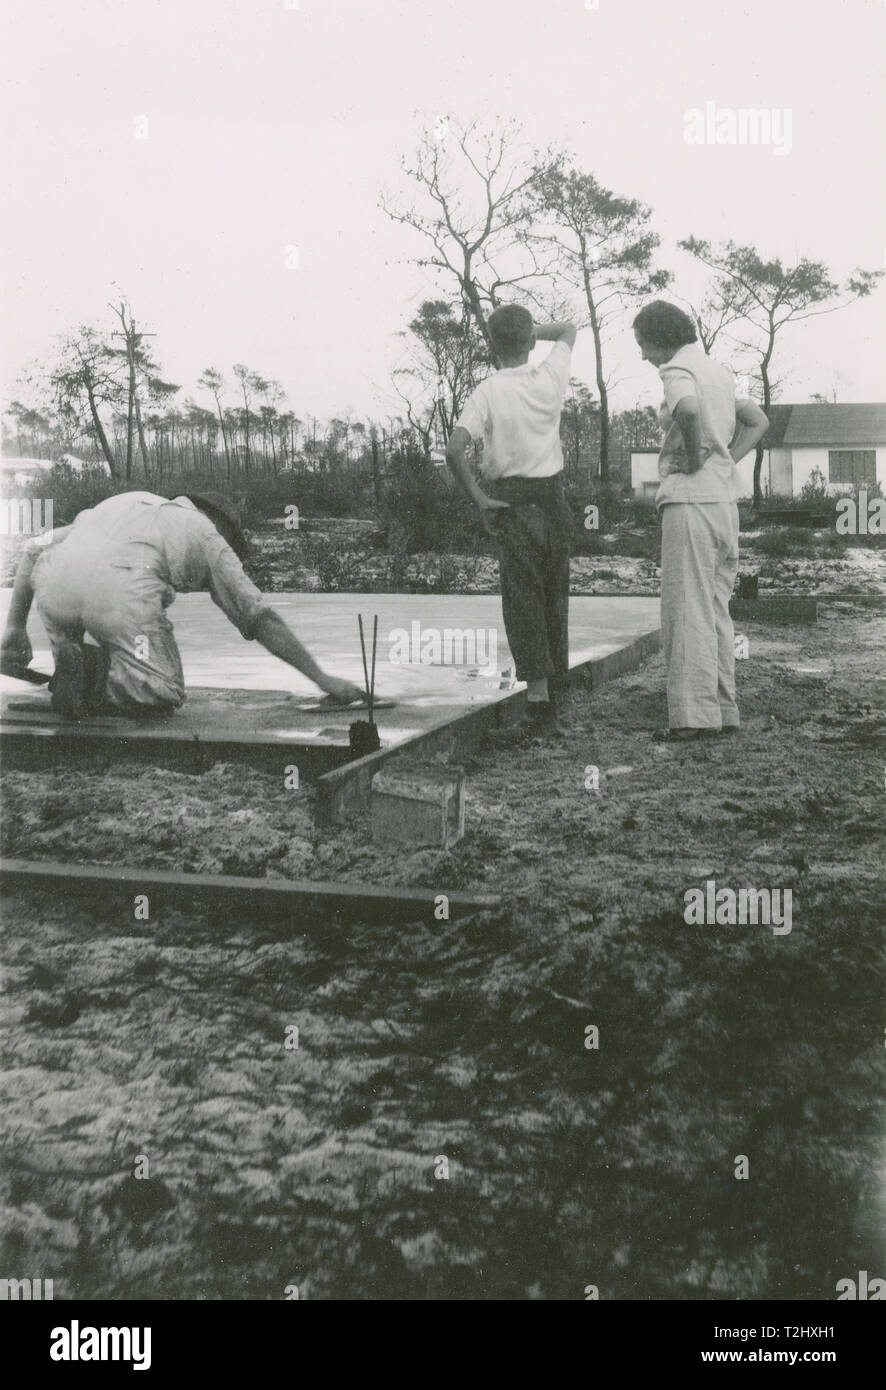 Antique c1950 photograph, man using a concrete float on new foundation poured in a frame. Location unknown, USA. SOURCE: ORIGINAL PHOTOGRAPHIC PRINT. African-American; blacksmith; black; man; shoe; shoeing; horse; farrier; cleaning; horseshoe; barn; anvil; handyman; photo; photograph; antique; vintage; period; old; candid; snapshot; historic; historical; archival; archive; b&w; black and white; 20th century; twentieth century; 1900s; 1950s; 1960s; 1950 - Stock Image